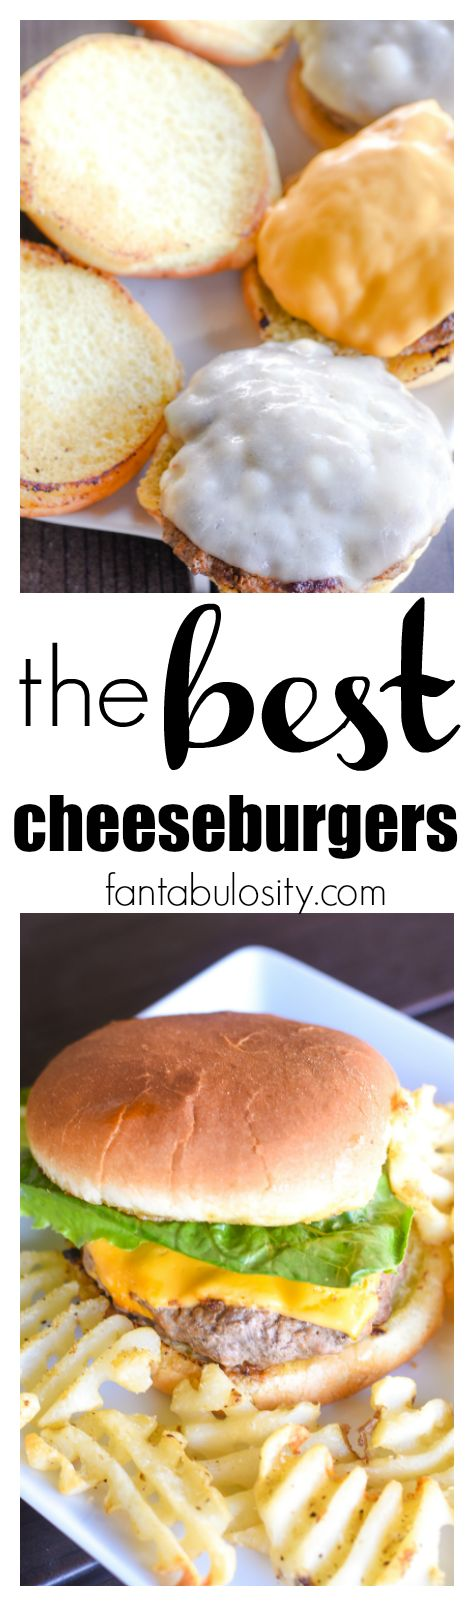 HOLY COW!!! This is the best cheeseburger recipe. My husband LOVED them, and they were so quick and easy too!